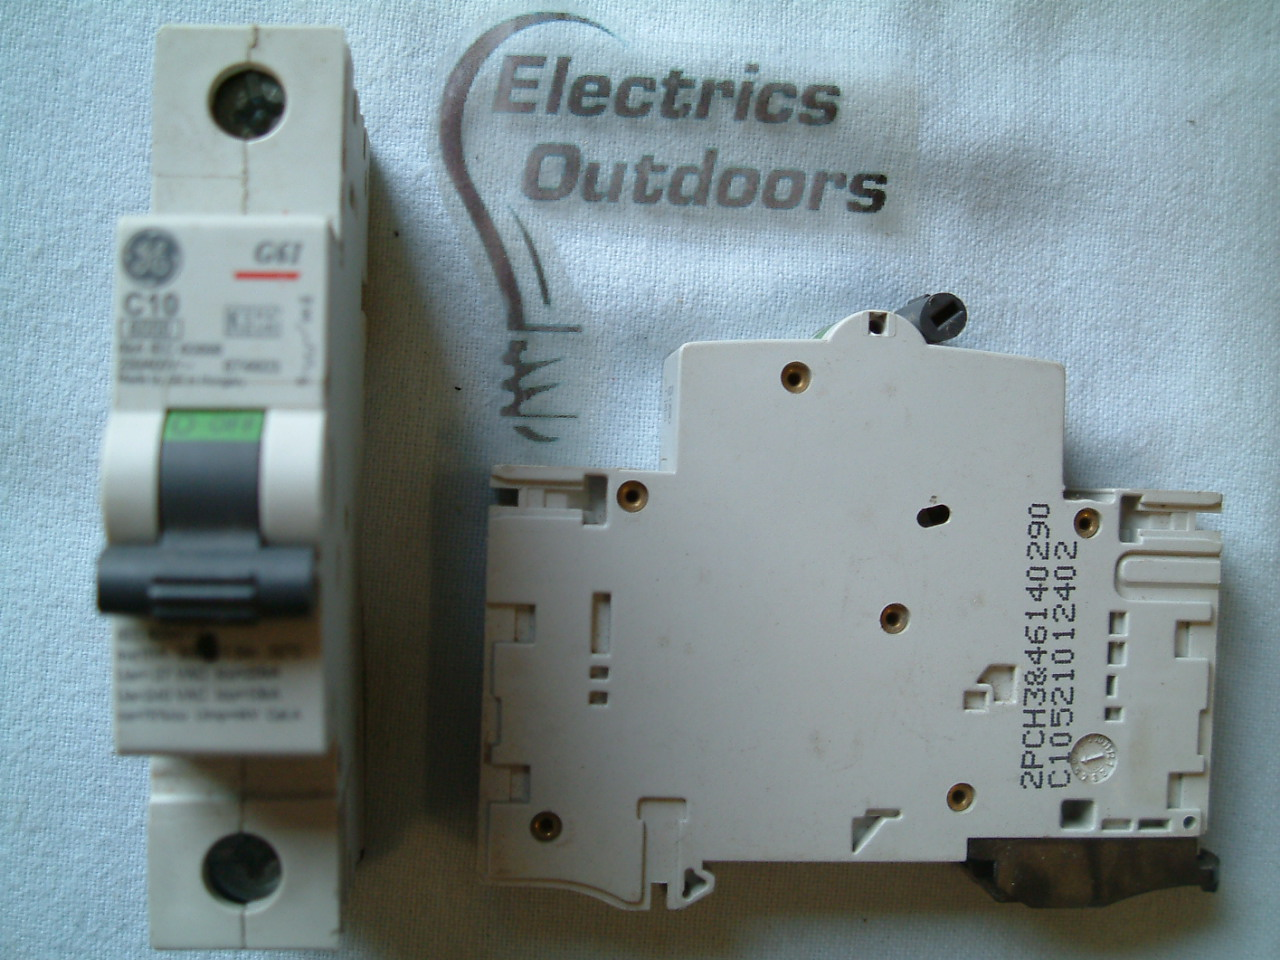 GE GENERAL ELECTRIC 10 AMP TYPE C 6 KA MCB 230V 400V G61 674603